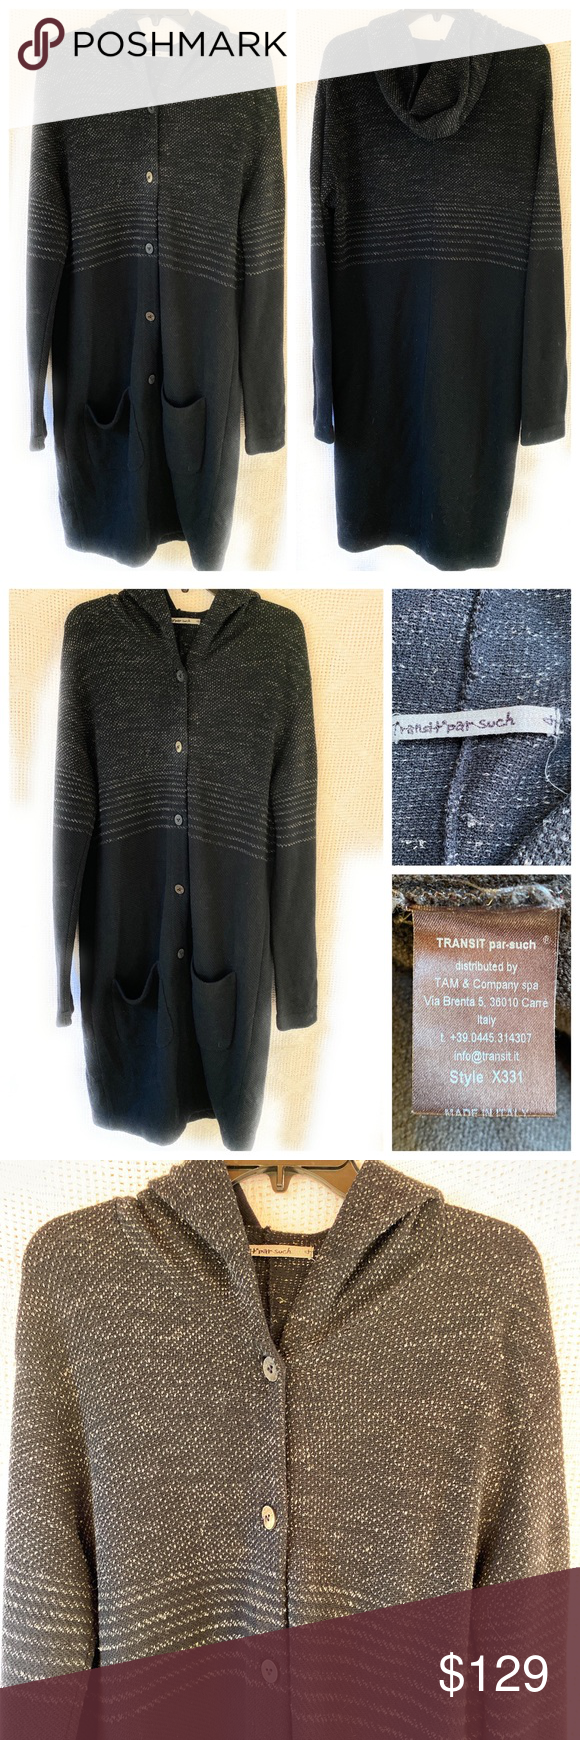 TRANSIT par such Maxi Cardigan Sweater With Hood (With